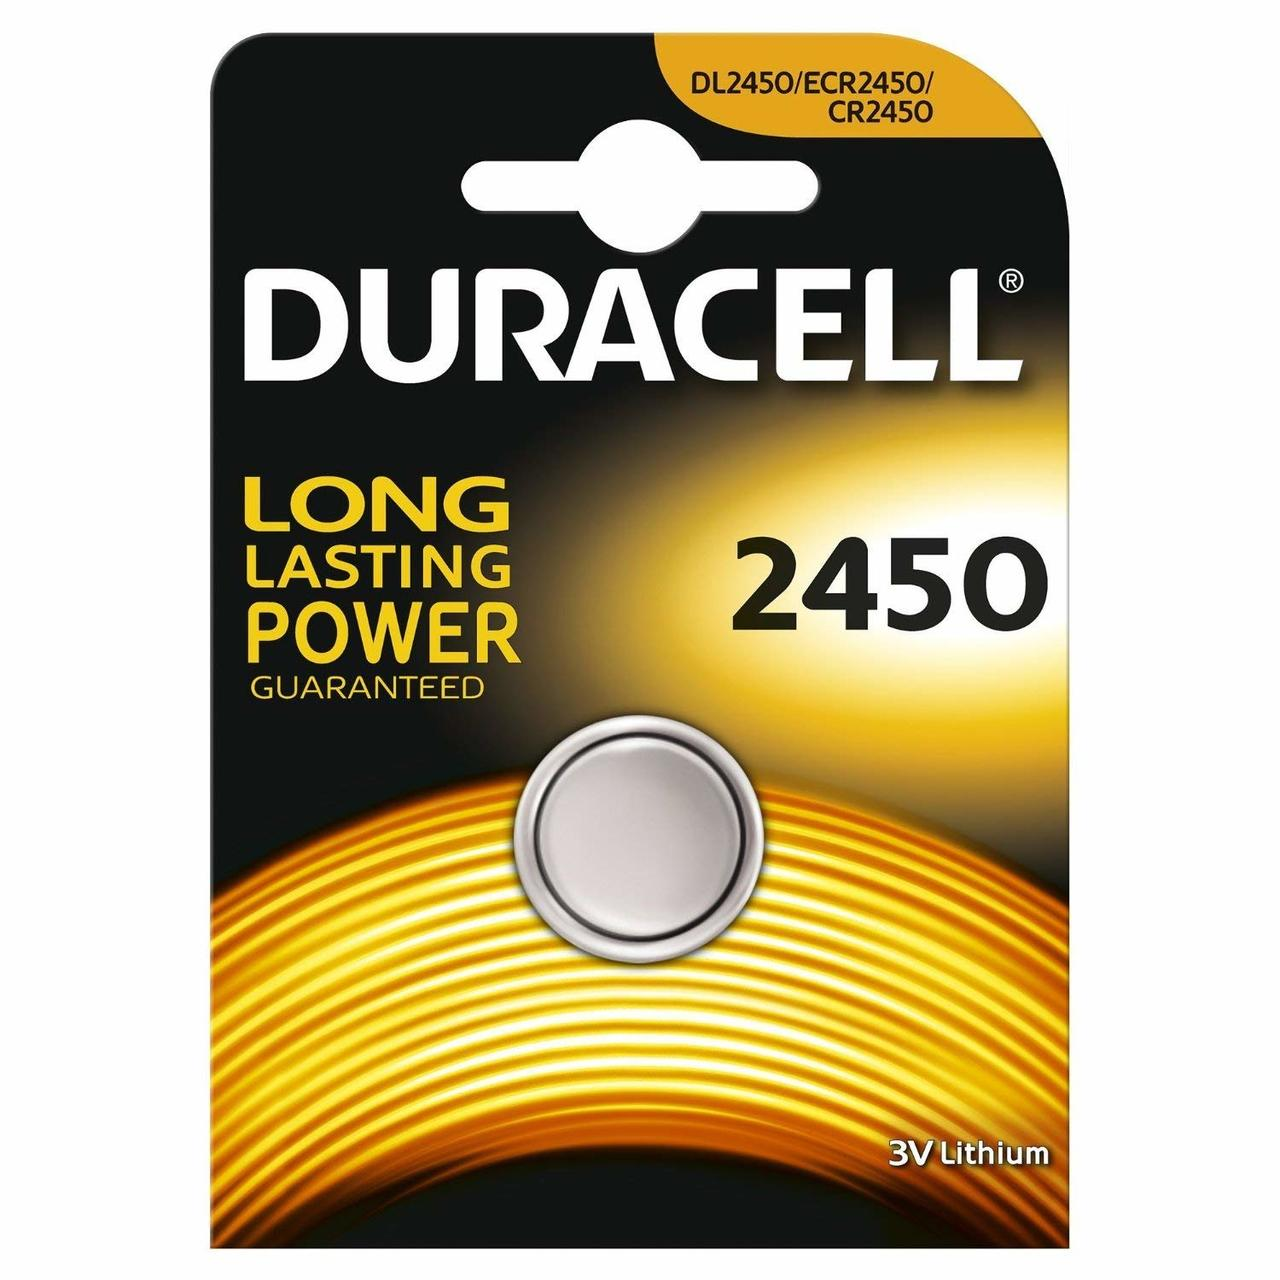 DURACELL SPECIALTY 2450 LITHIUM COIN